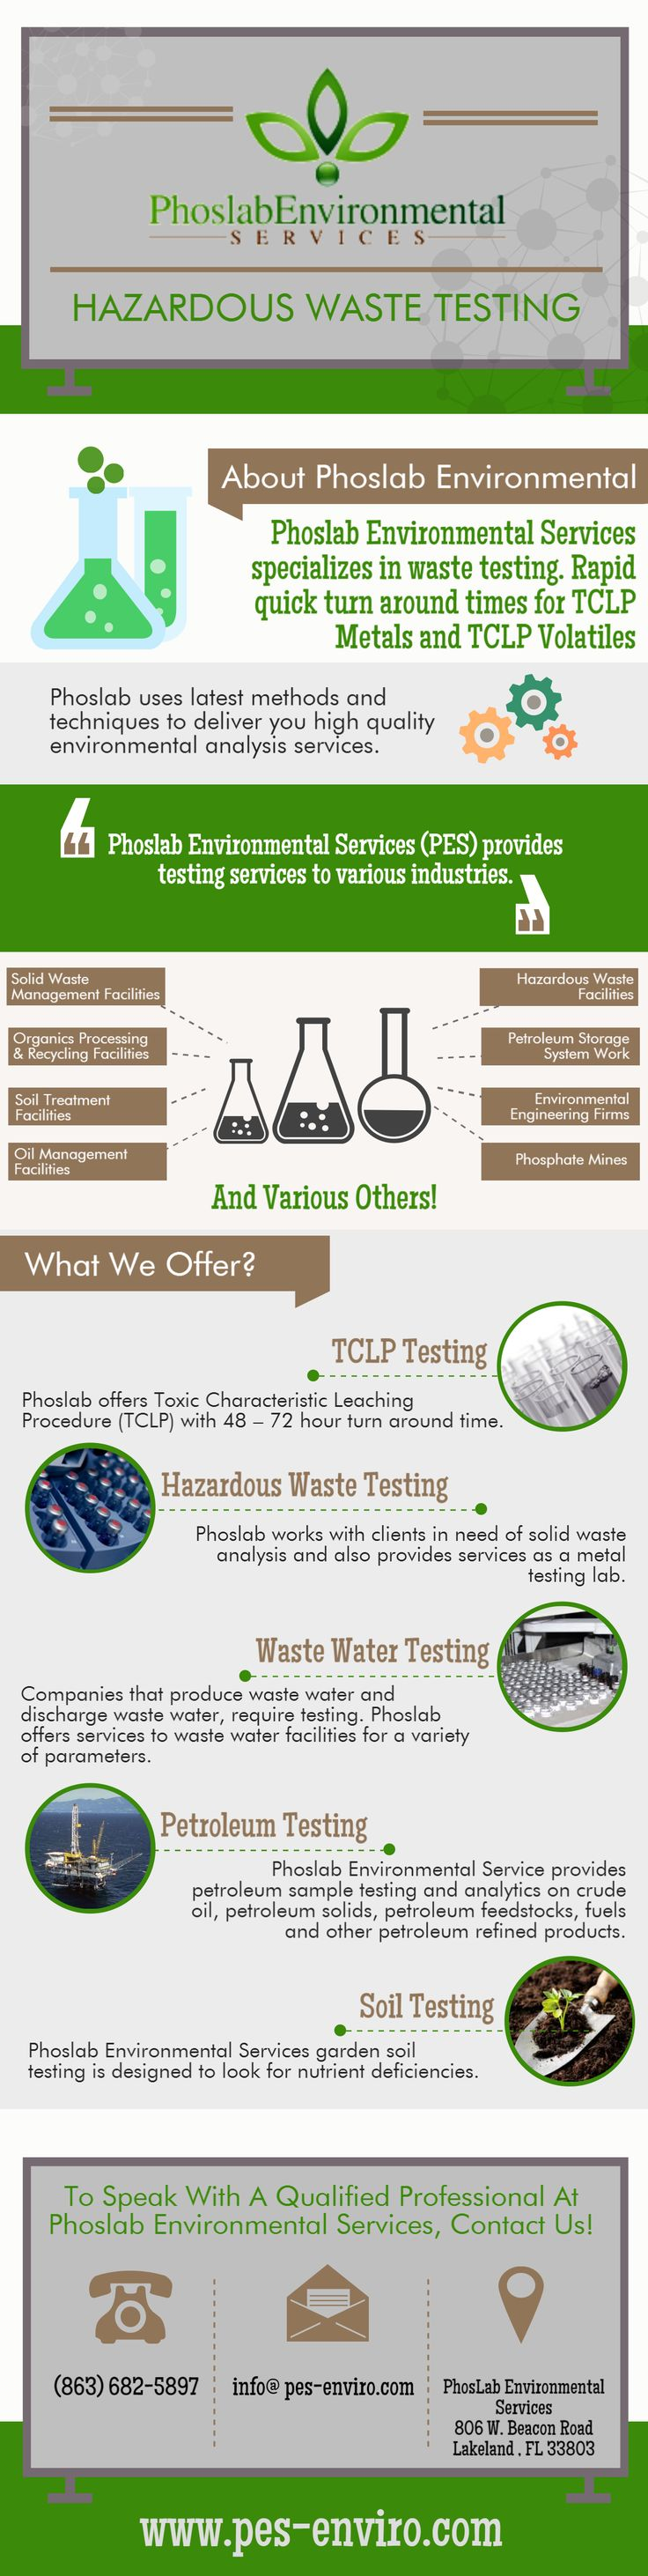 71 best creative infographic images on pinterest creative phoslab environmental services inc pes is an analytical laboratory that provides quality environmental testing services to different business divisions fandeluxe Images